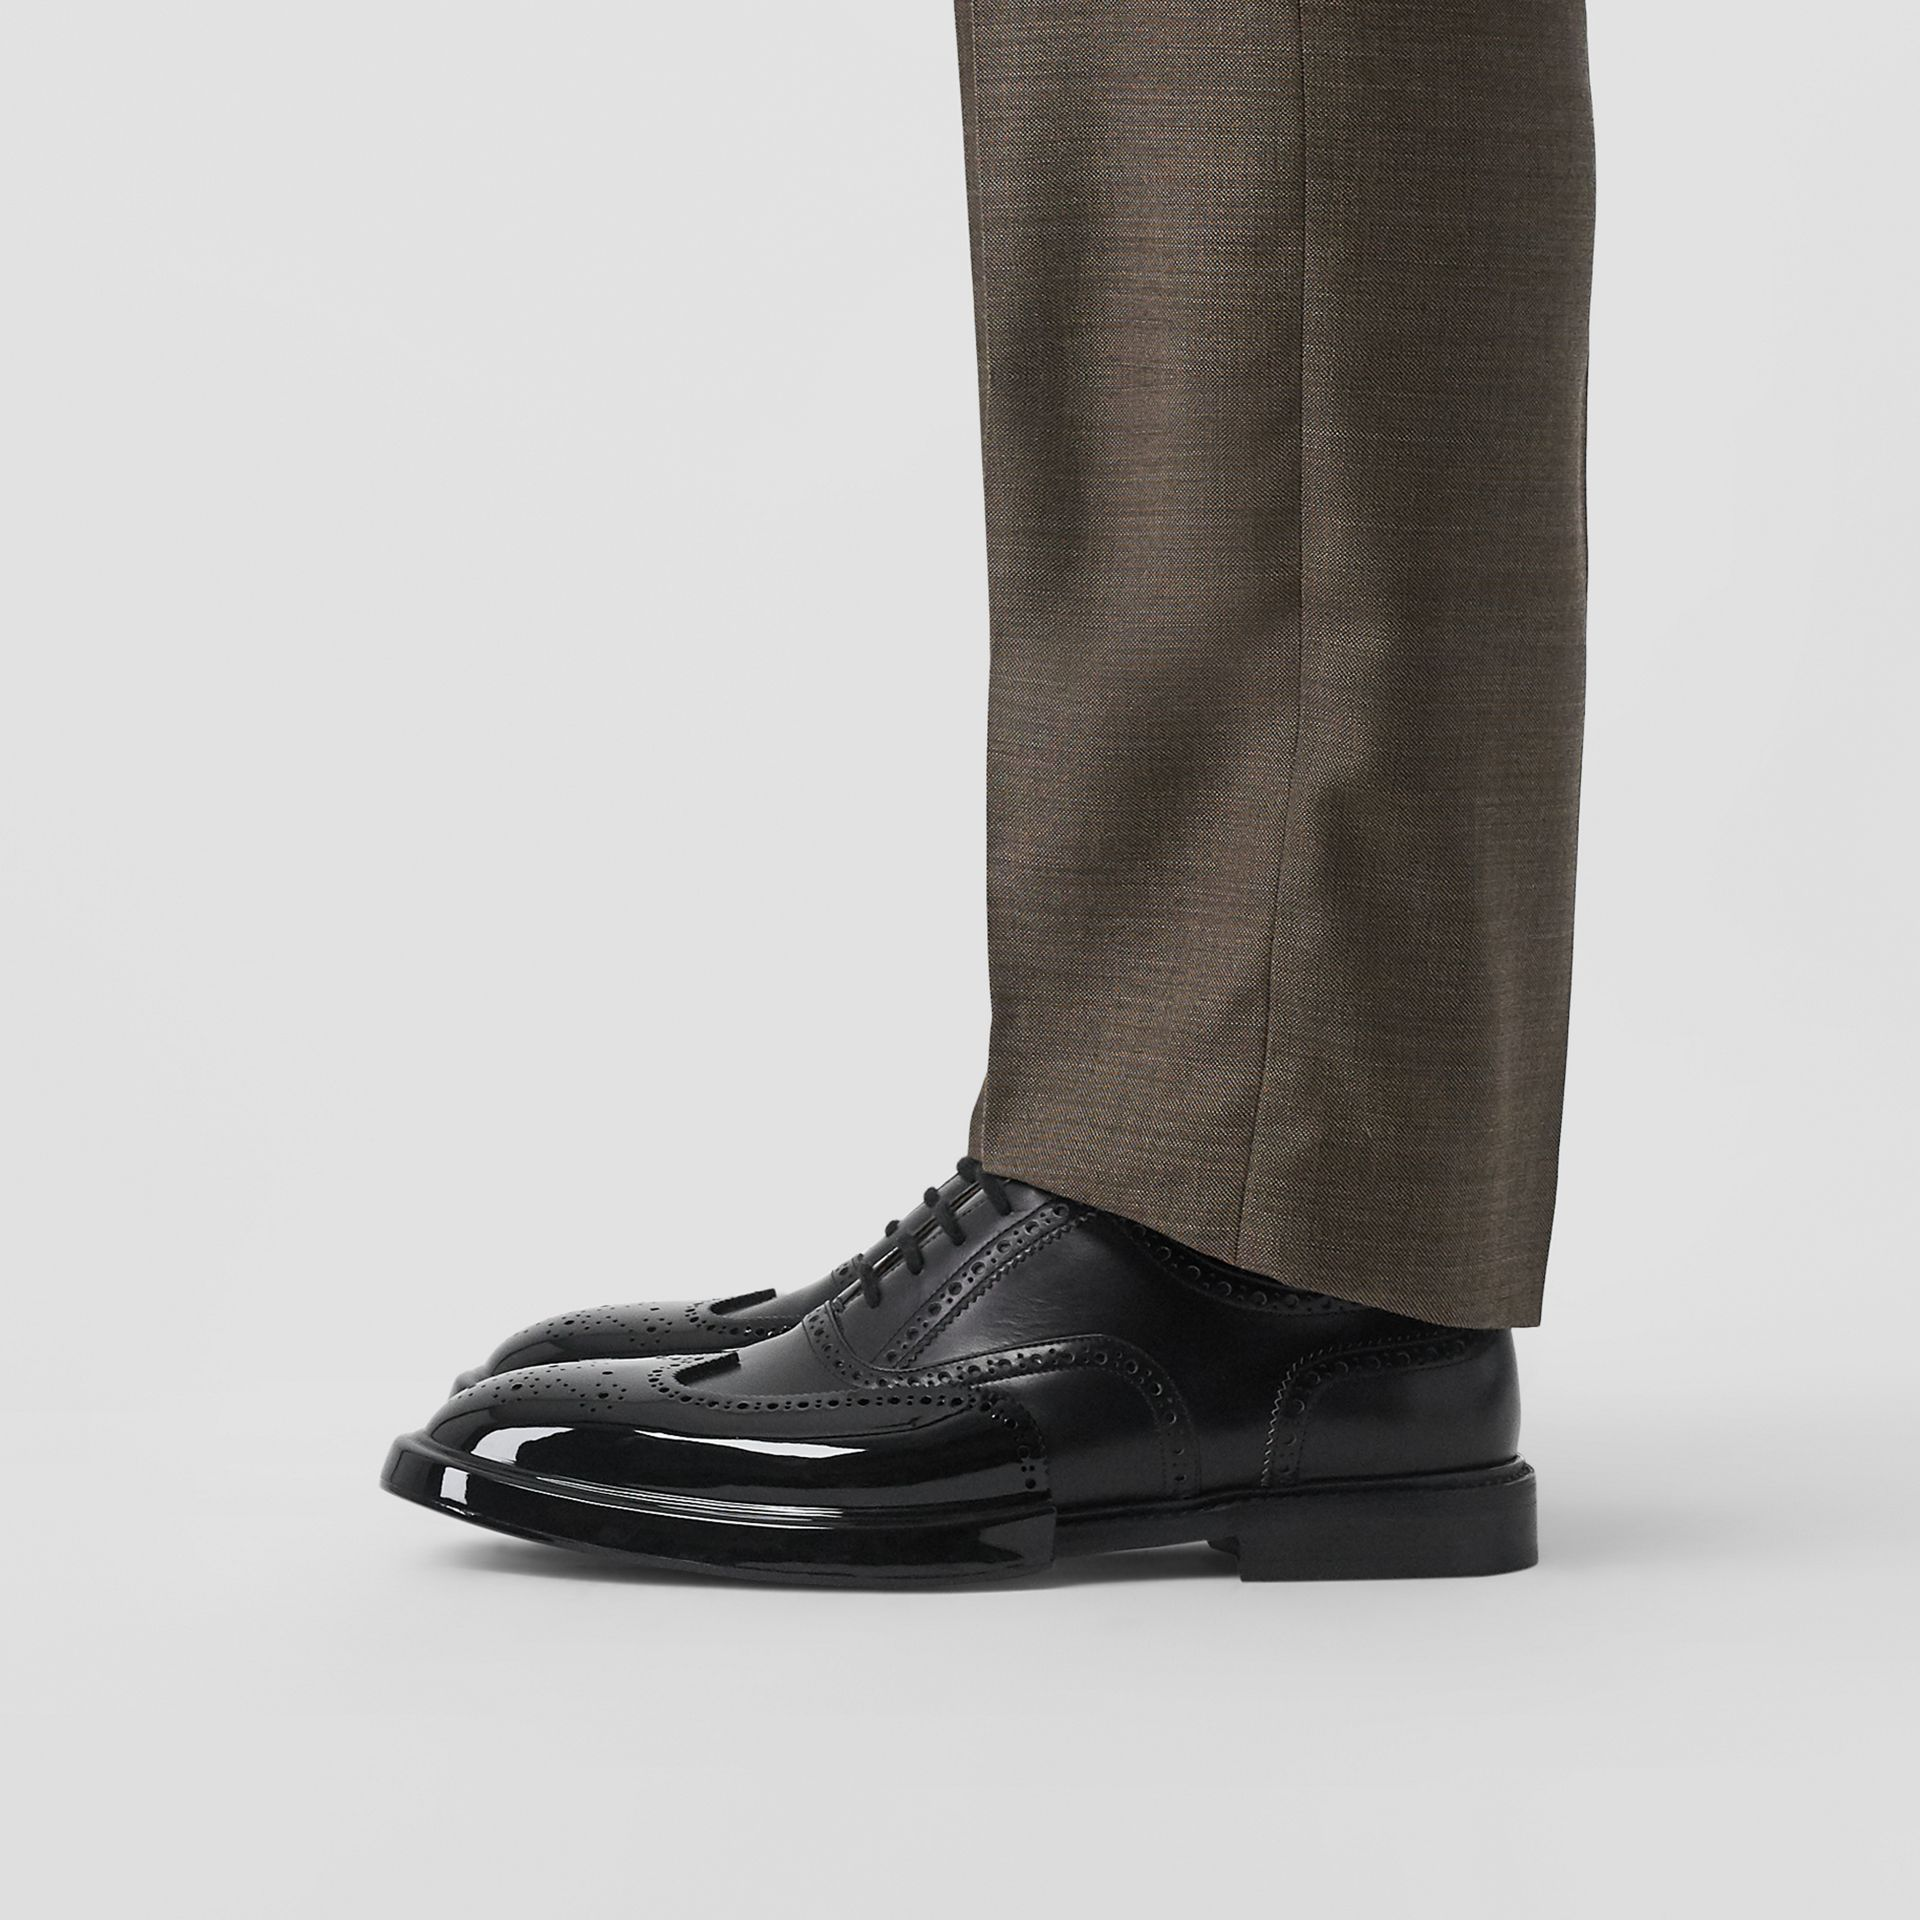 Toe Cap Detail Leather Oxford Brogues in Black - Men | Burberry - gallery image 2